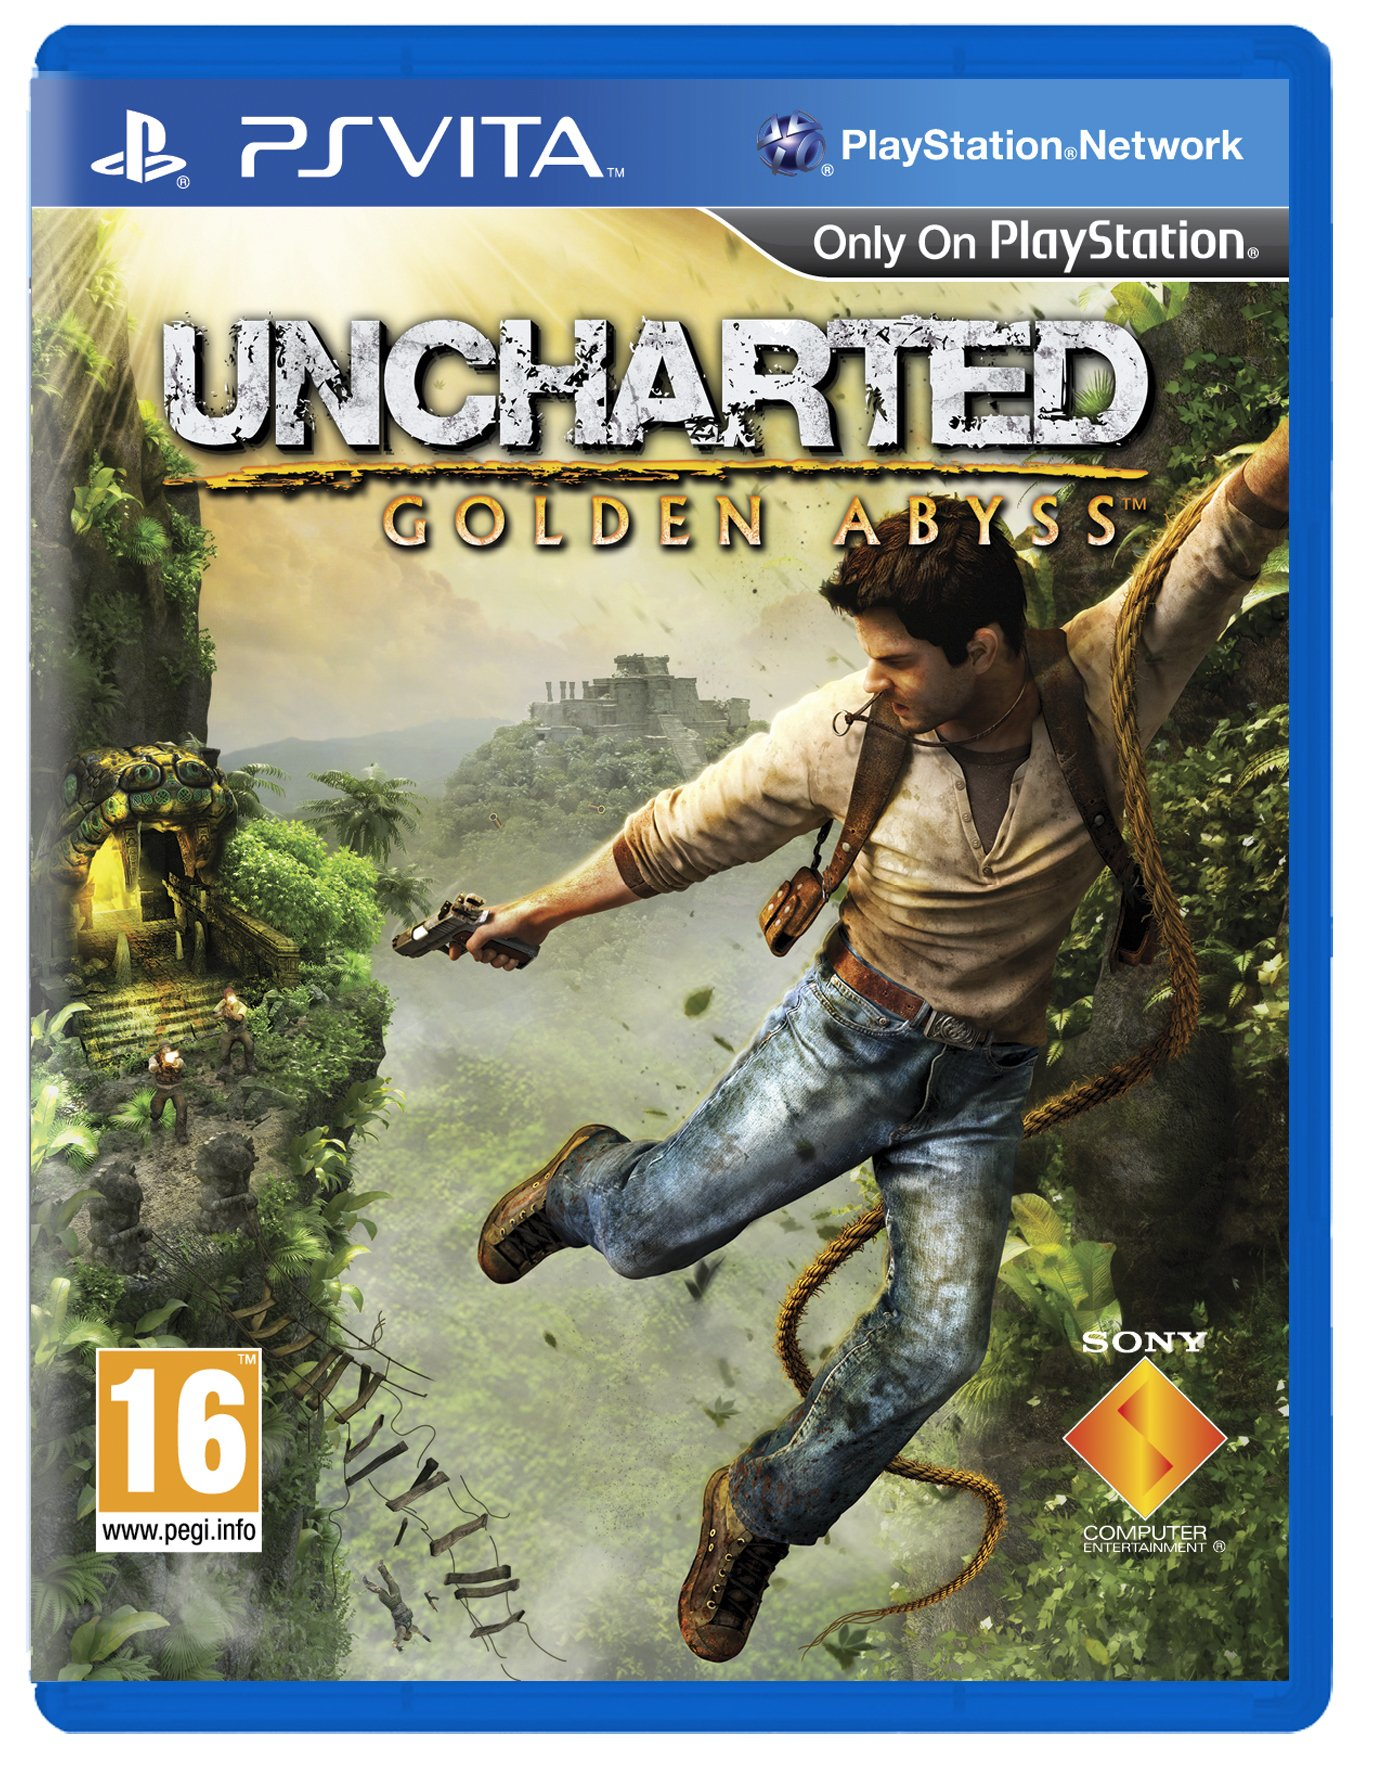 Uncharted: Golden Abyss (PS Vita) product image